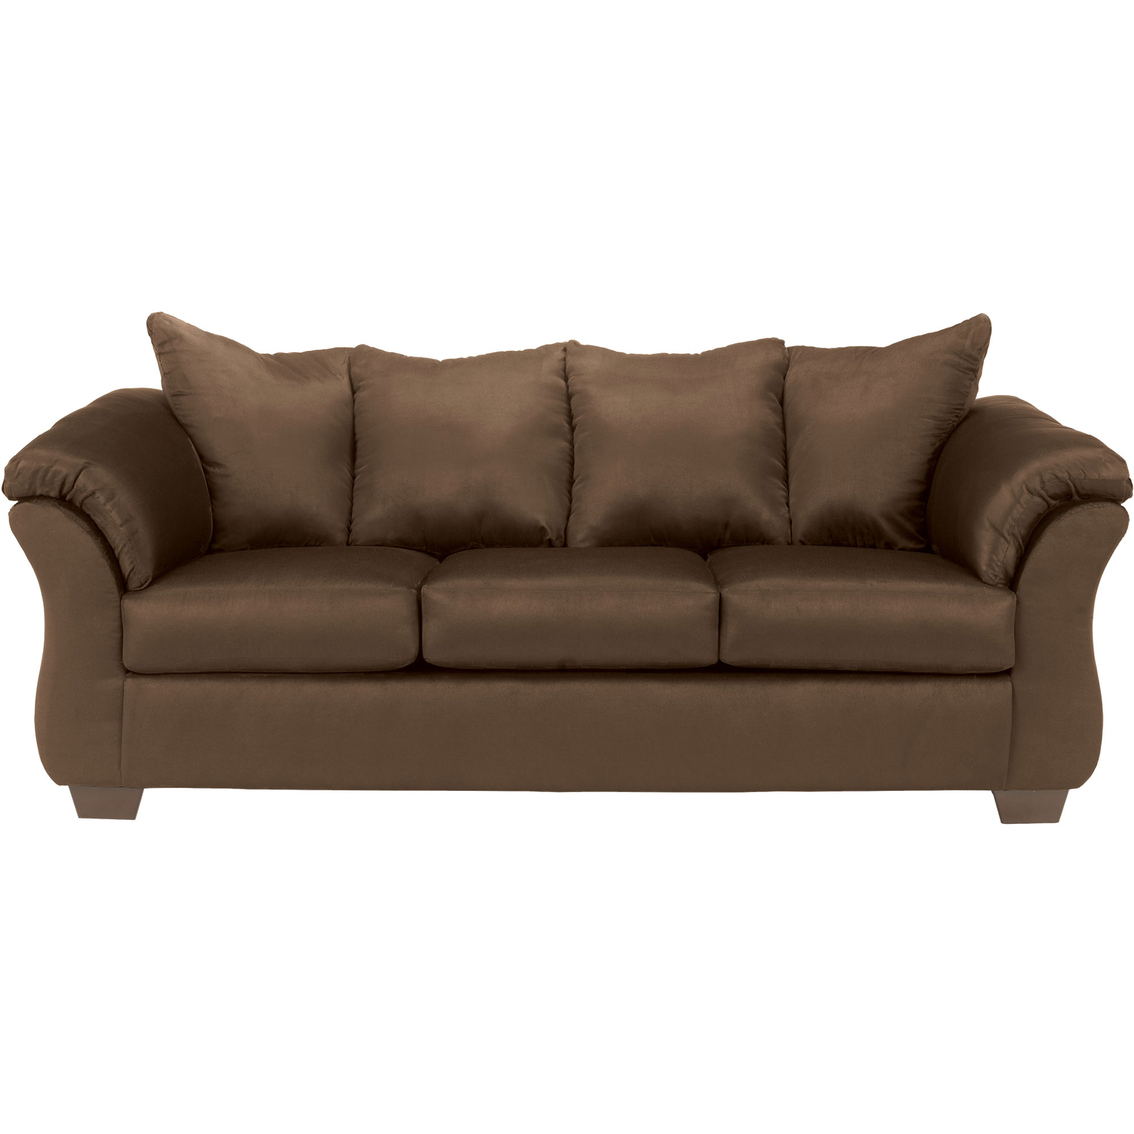 The Living Room Furniture Shop Ashley Darcy Sofa Sofas Couches Home Appliances Shop The